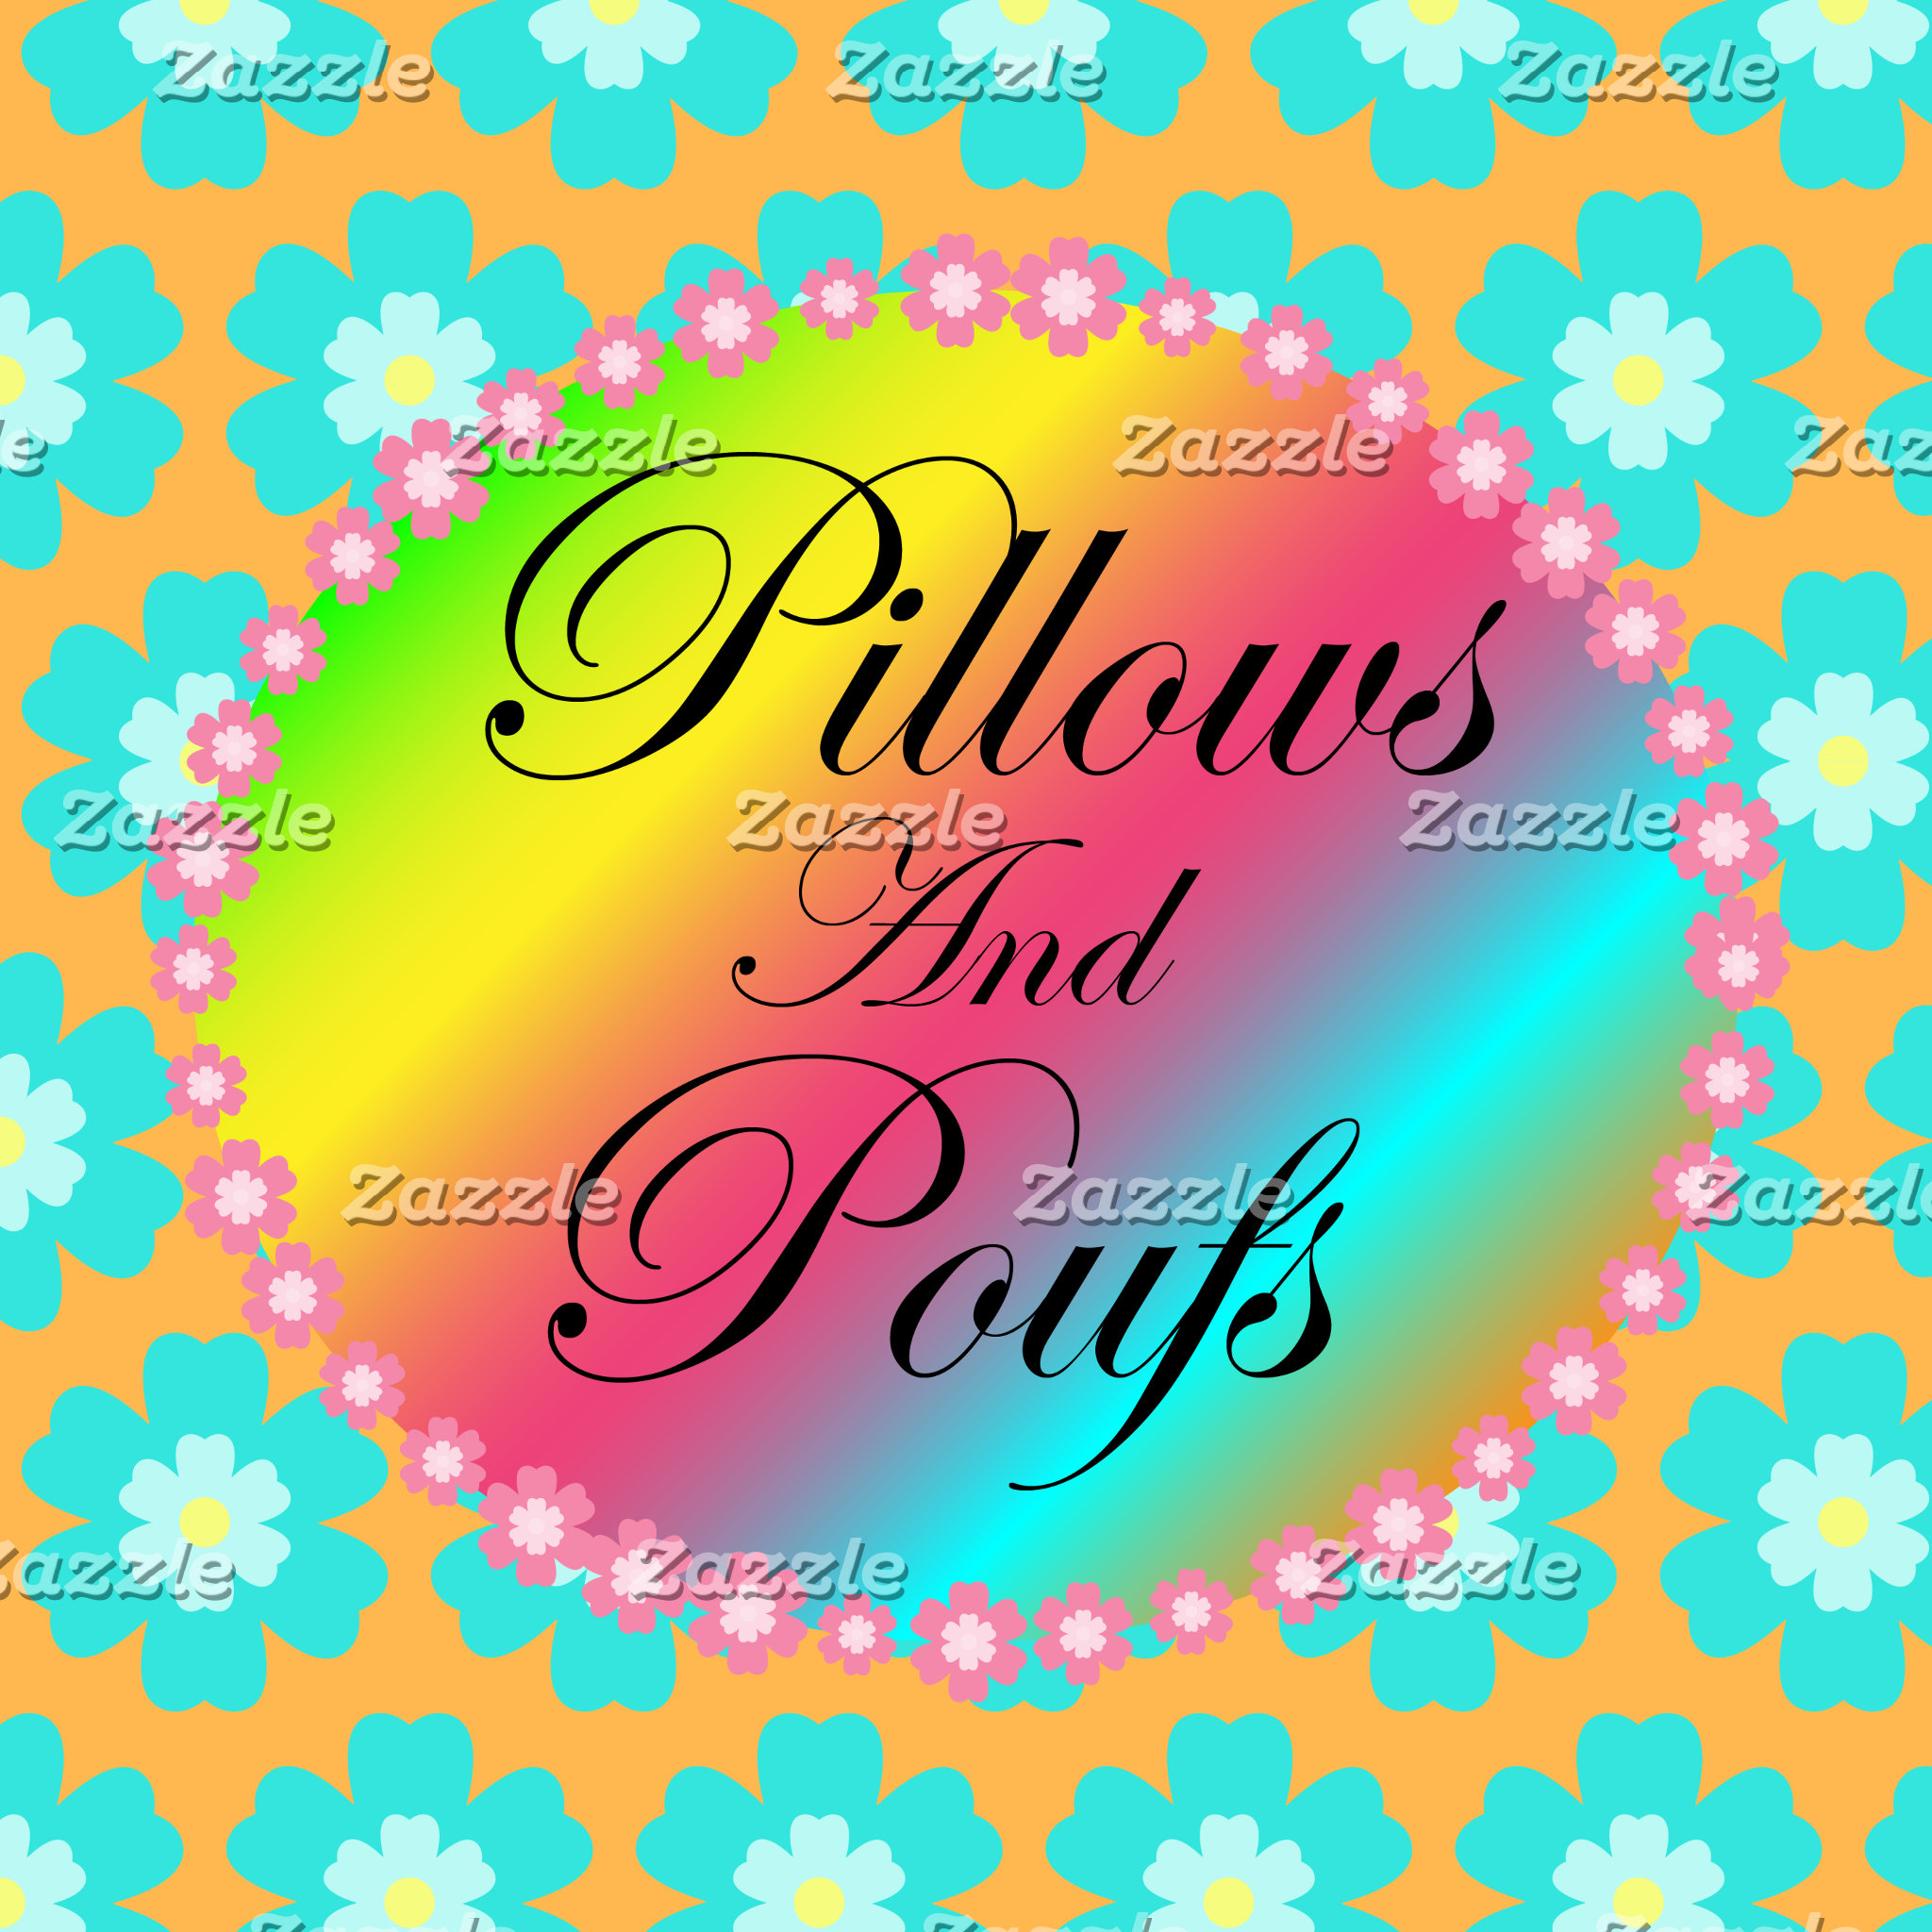 01. Pillows And Poufs